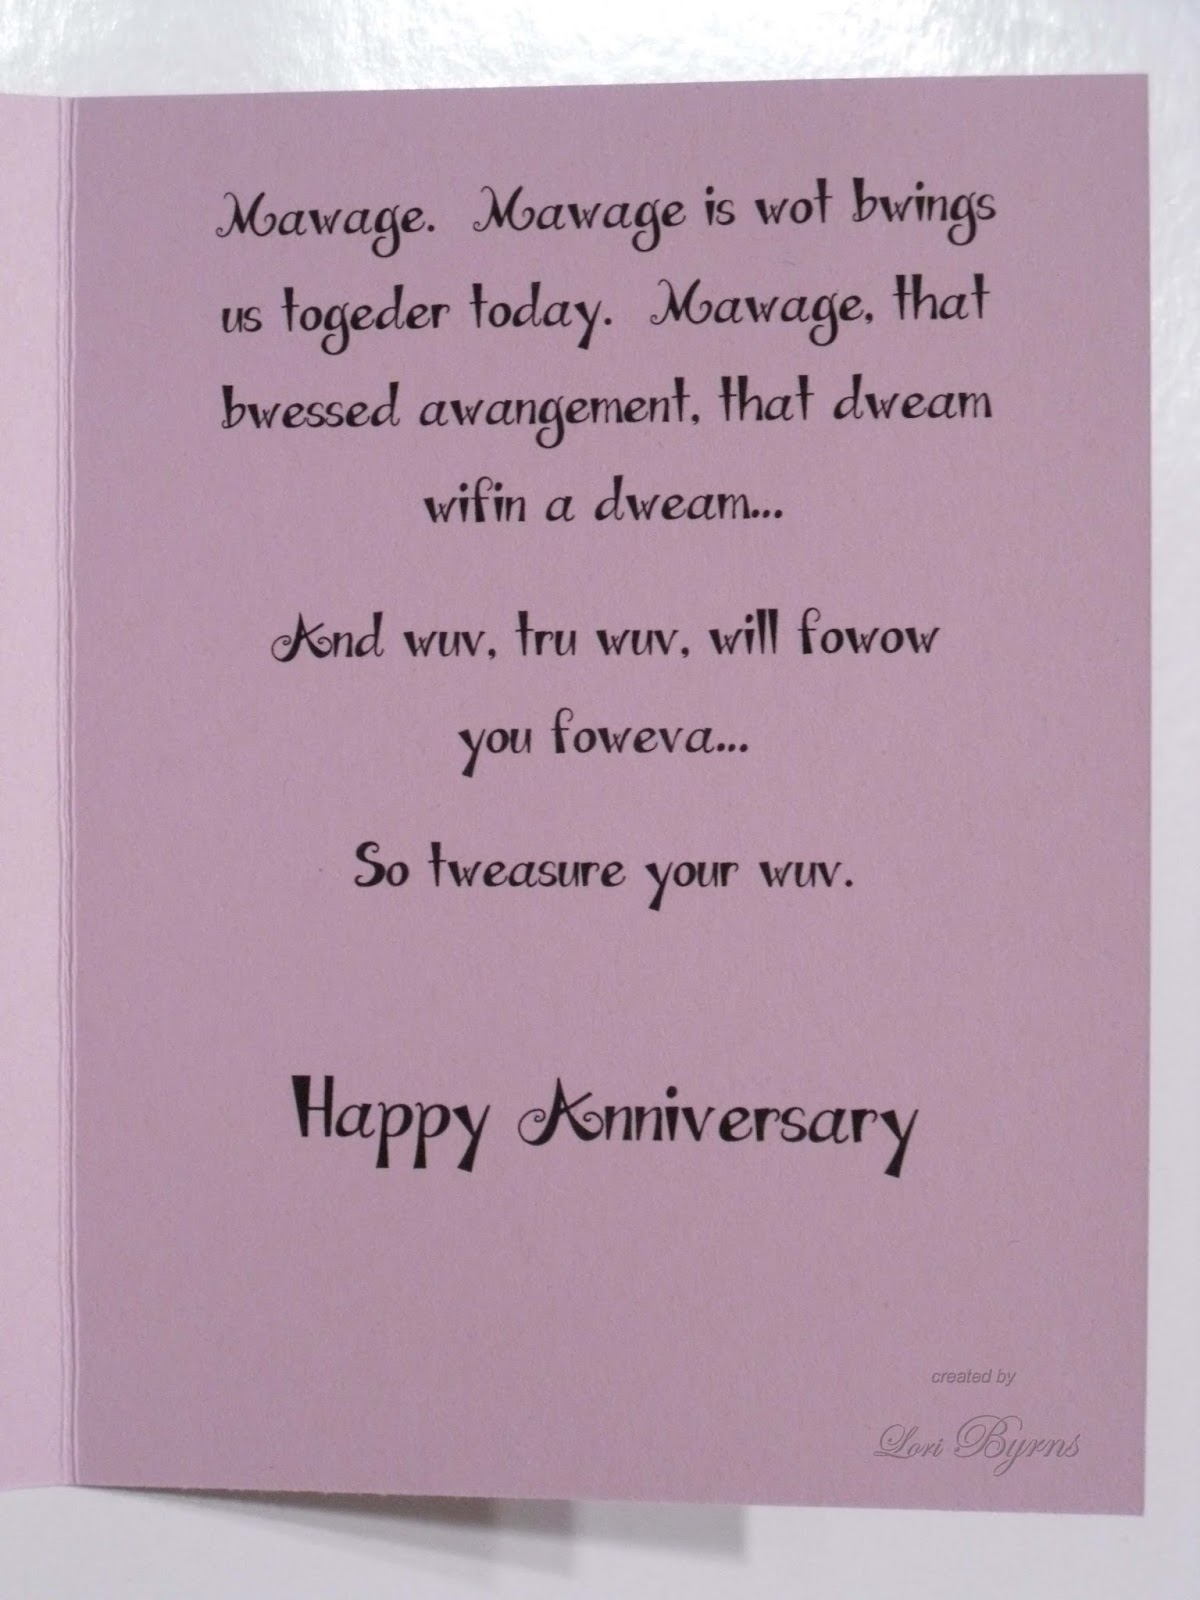 1st Wedding Anniversary Gift Ideas For Sister And Brother In Law : Wedding Anniversary Verses For Sister And Brother In Law - The Best ...